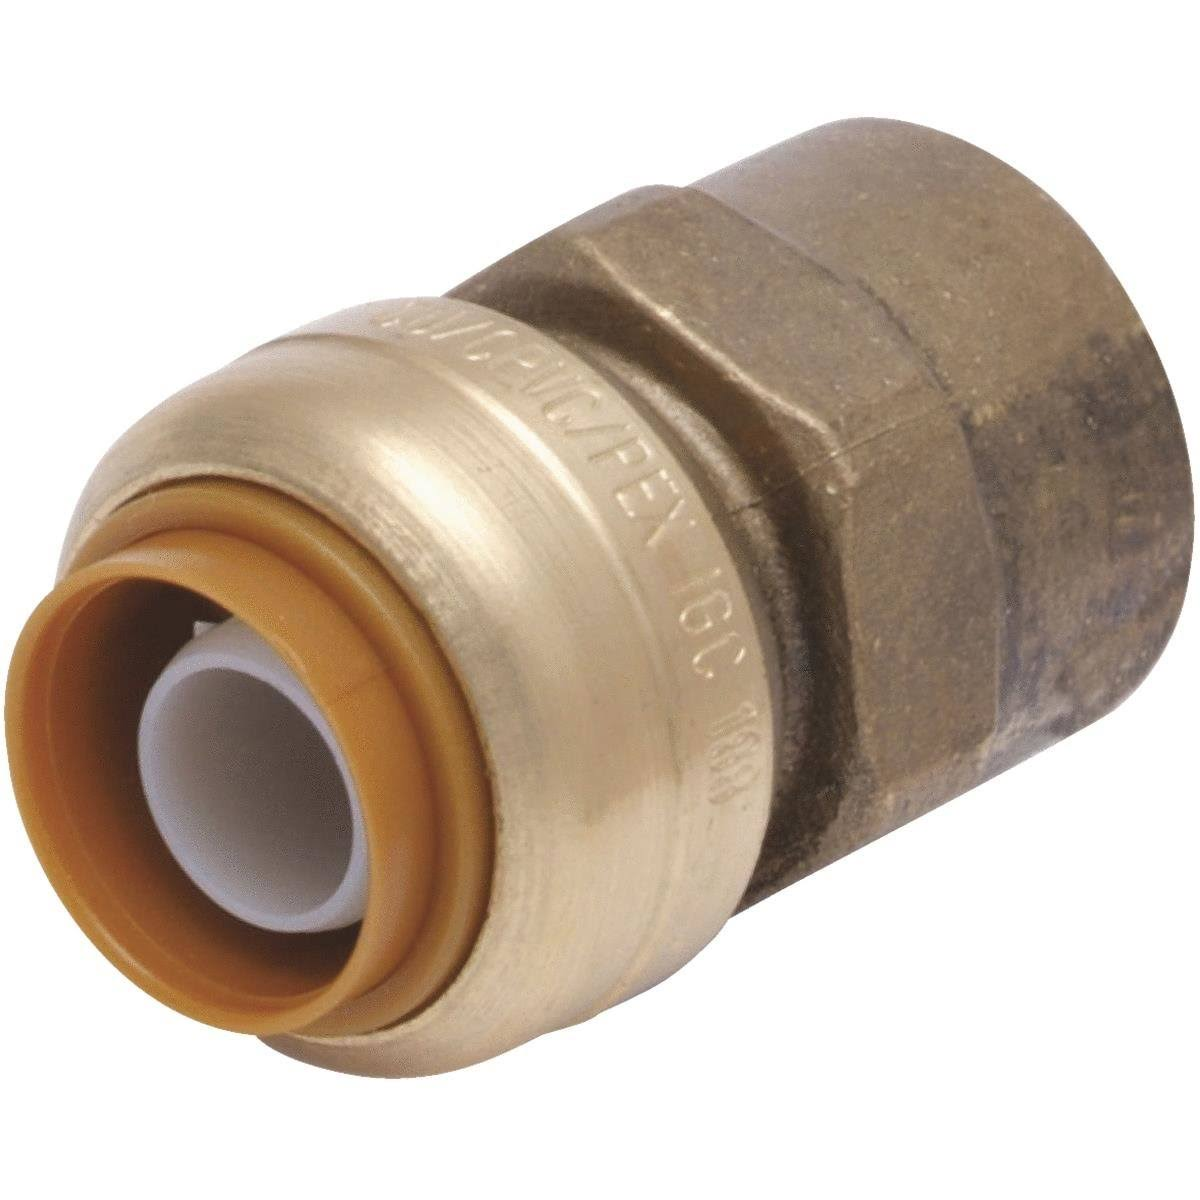 "SharkBite Lead Free Straight Connector - Brass, 3/4"" X 3/4"""